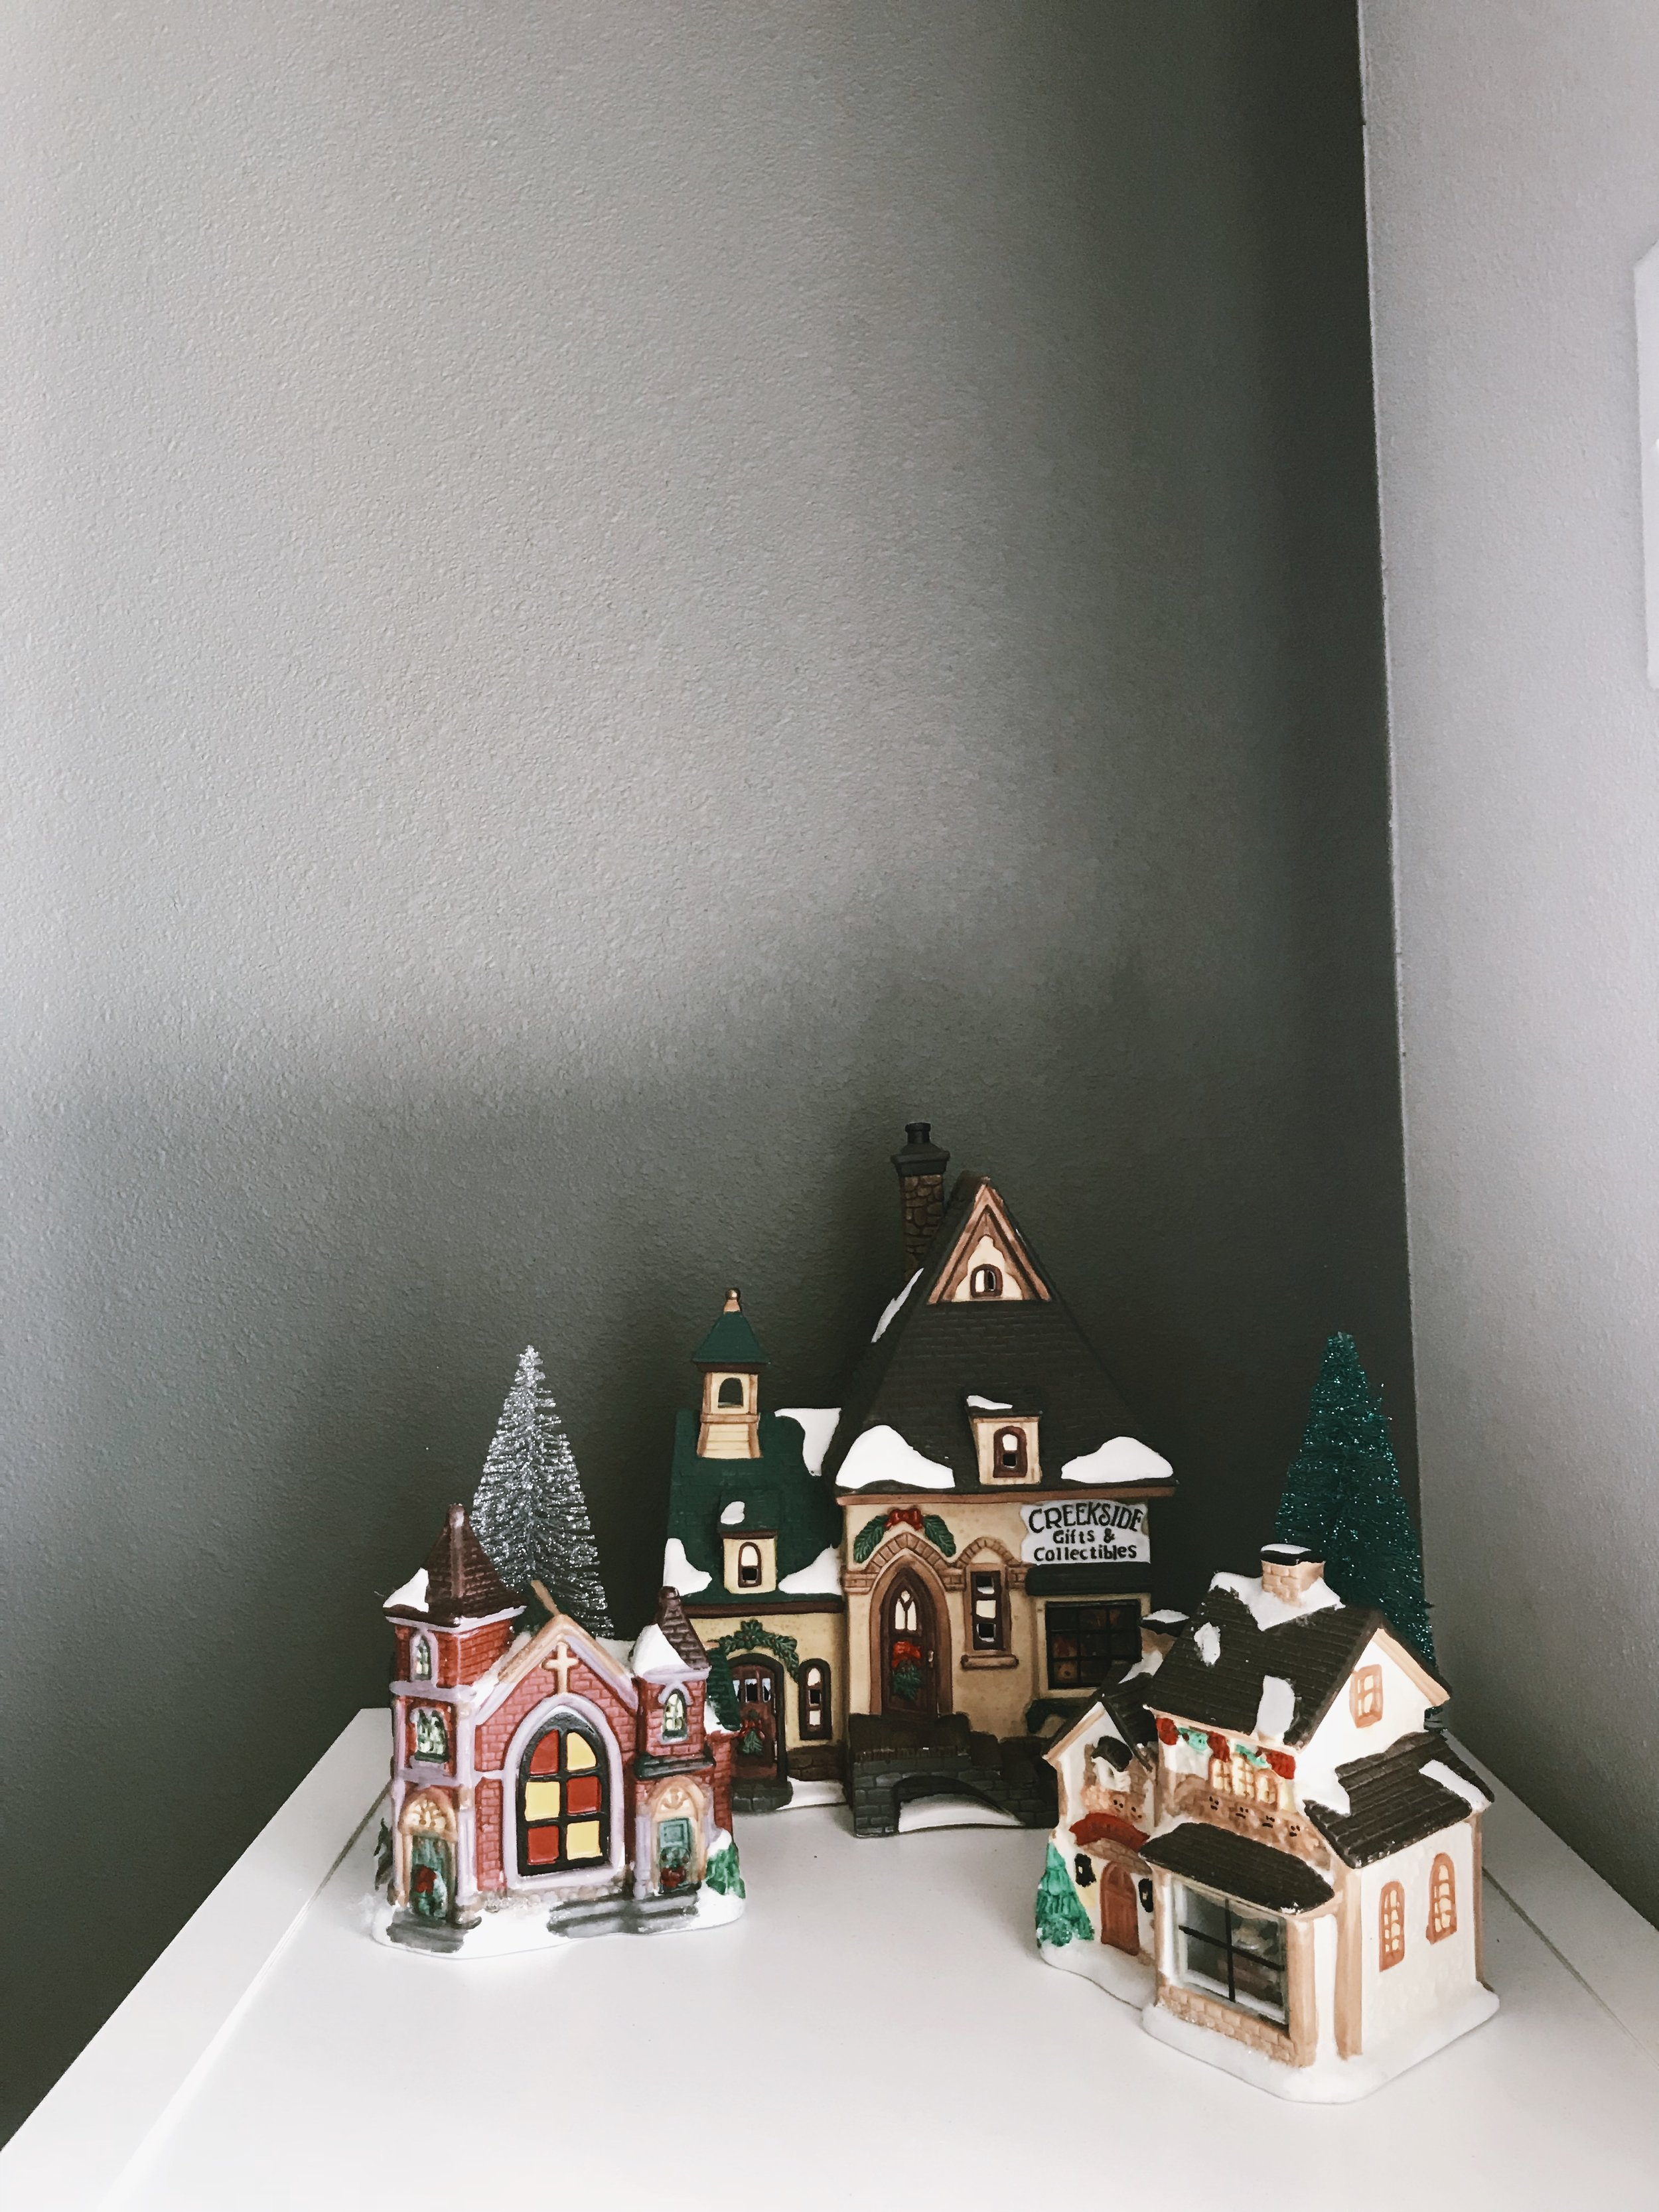 OUR HOME FOR THE HOLIDAYS + A FEW HOLIDAY DIYS - This Wild Home